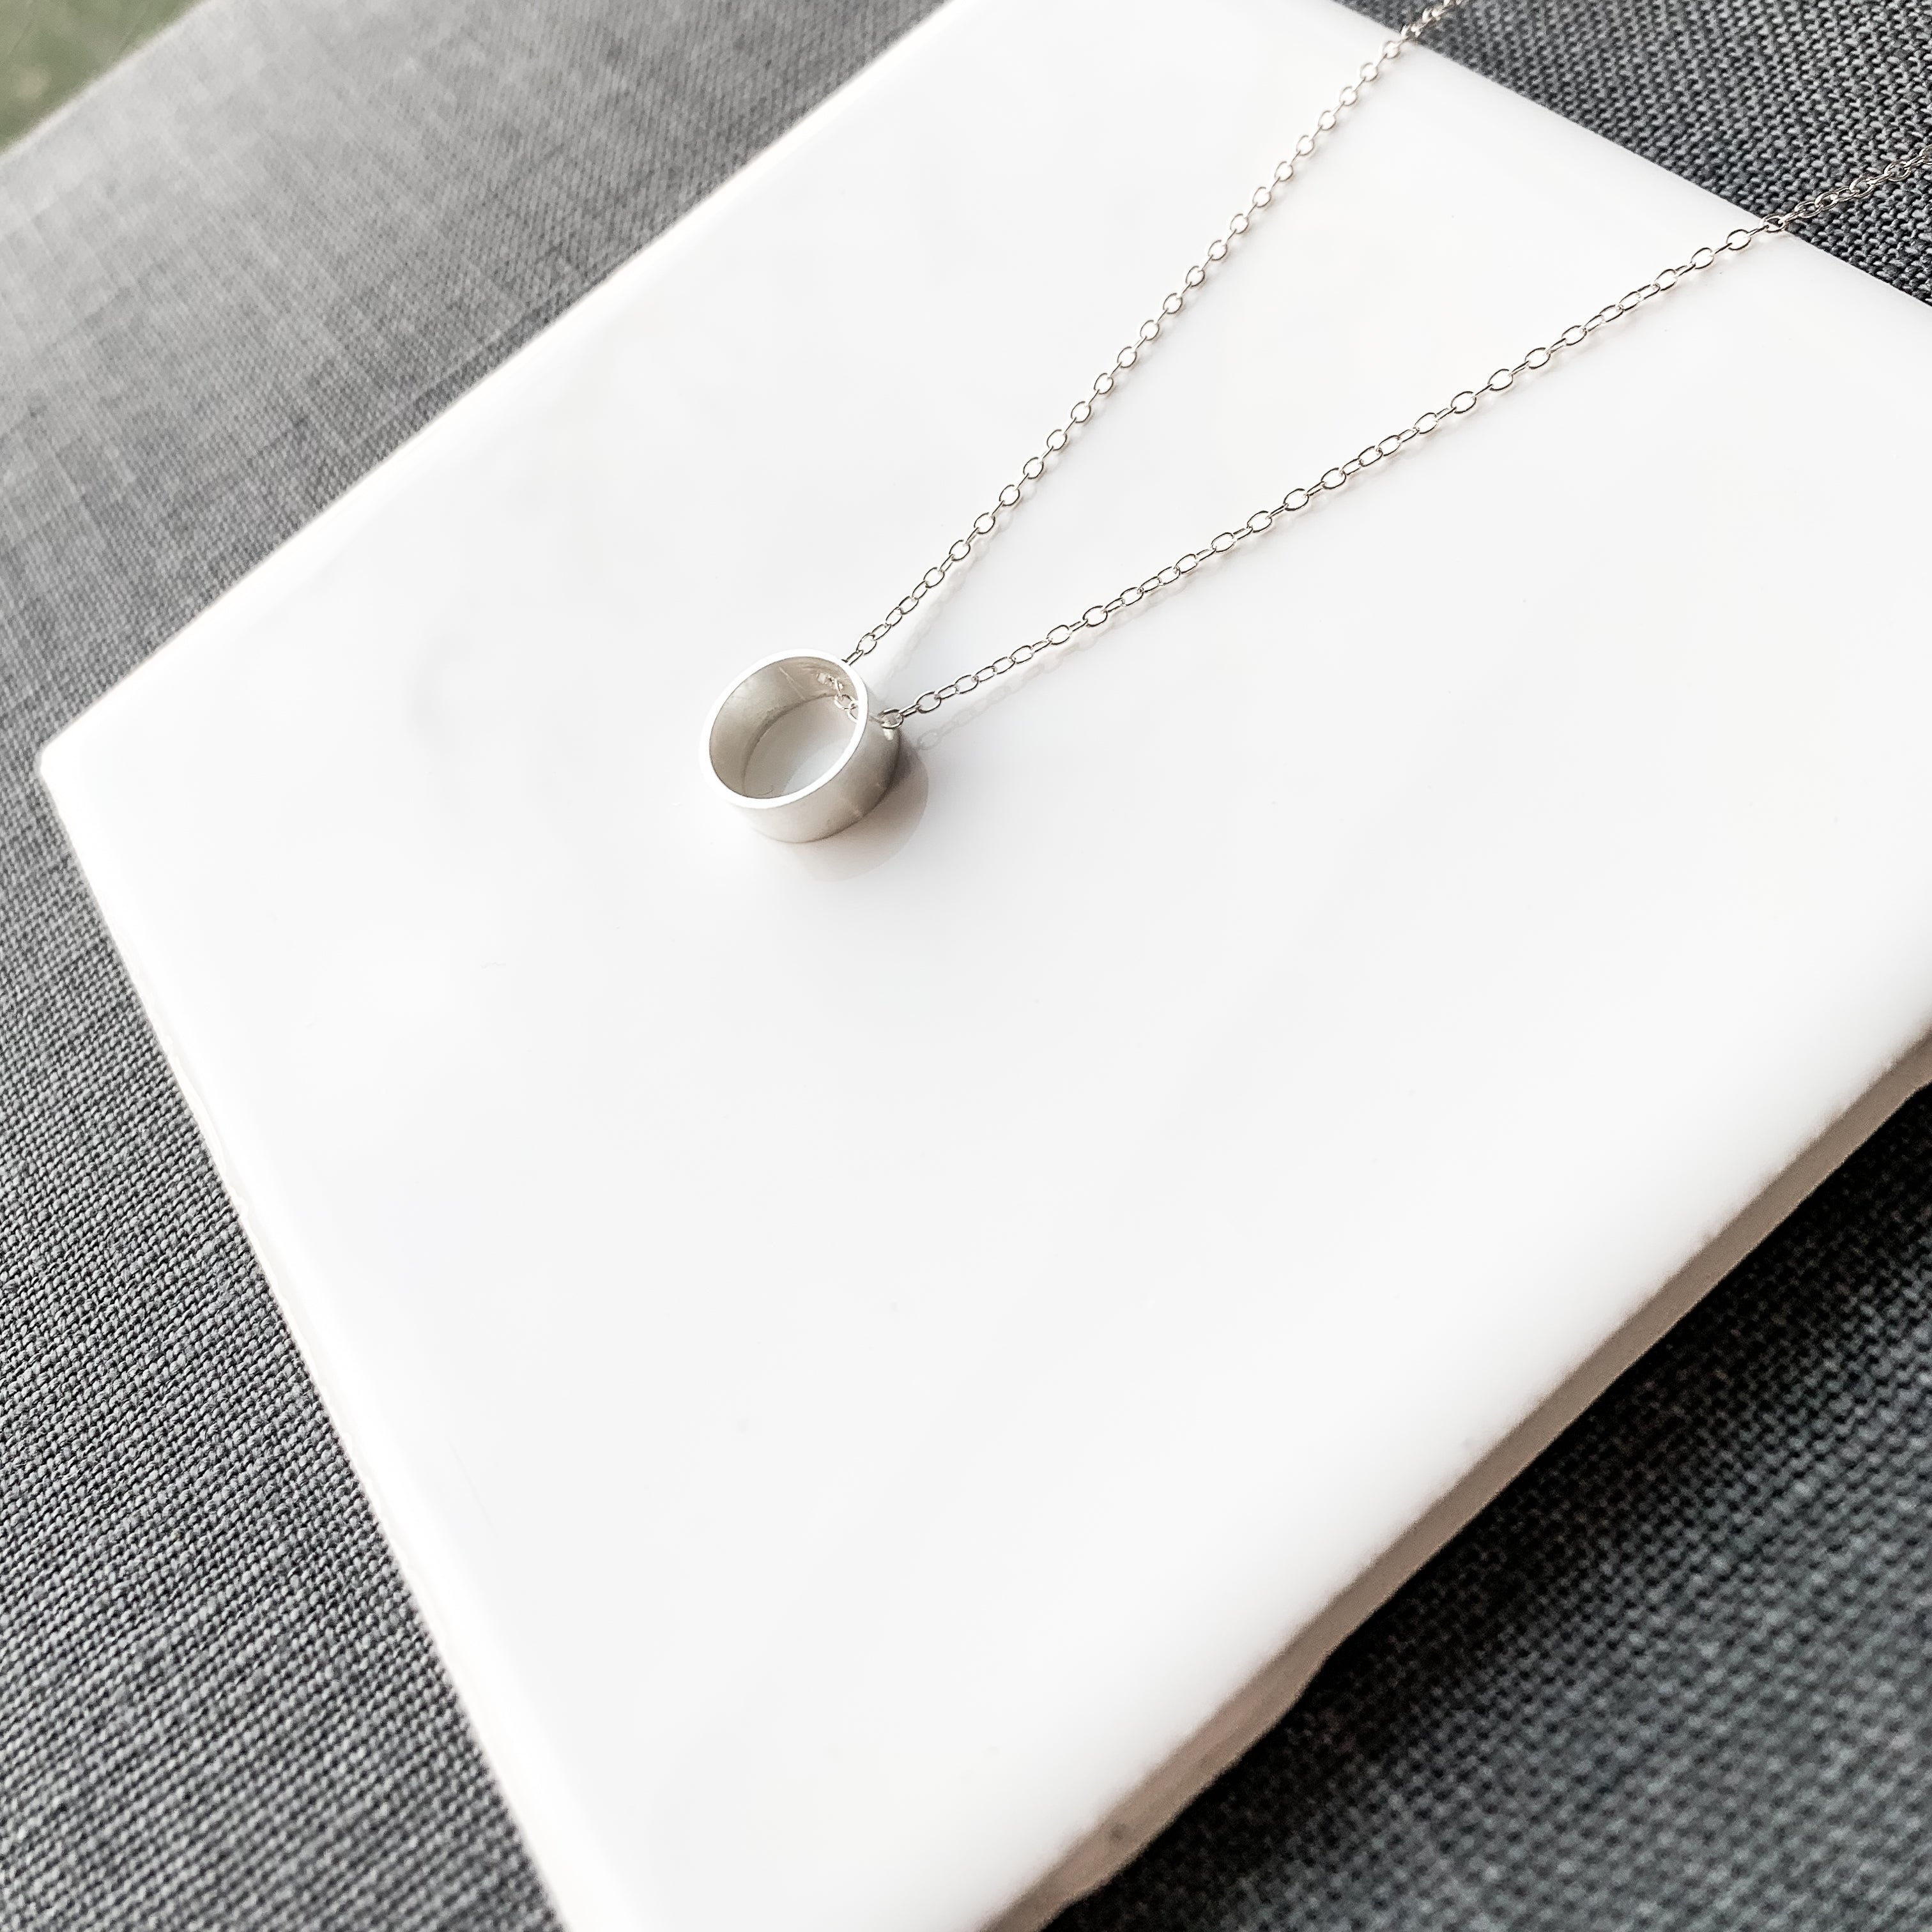 MINIMA - BOLA small - necklace (more options available)